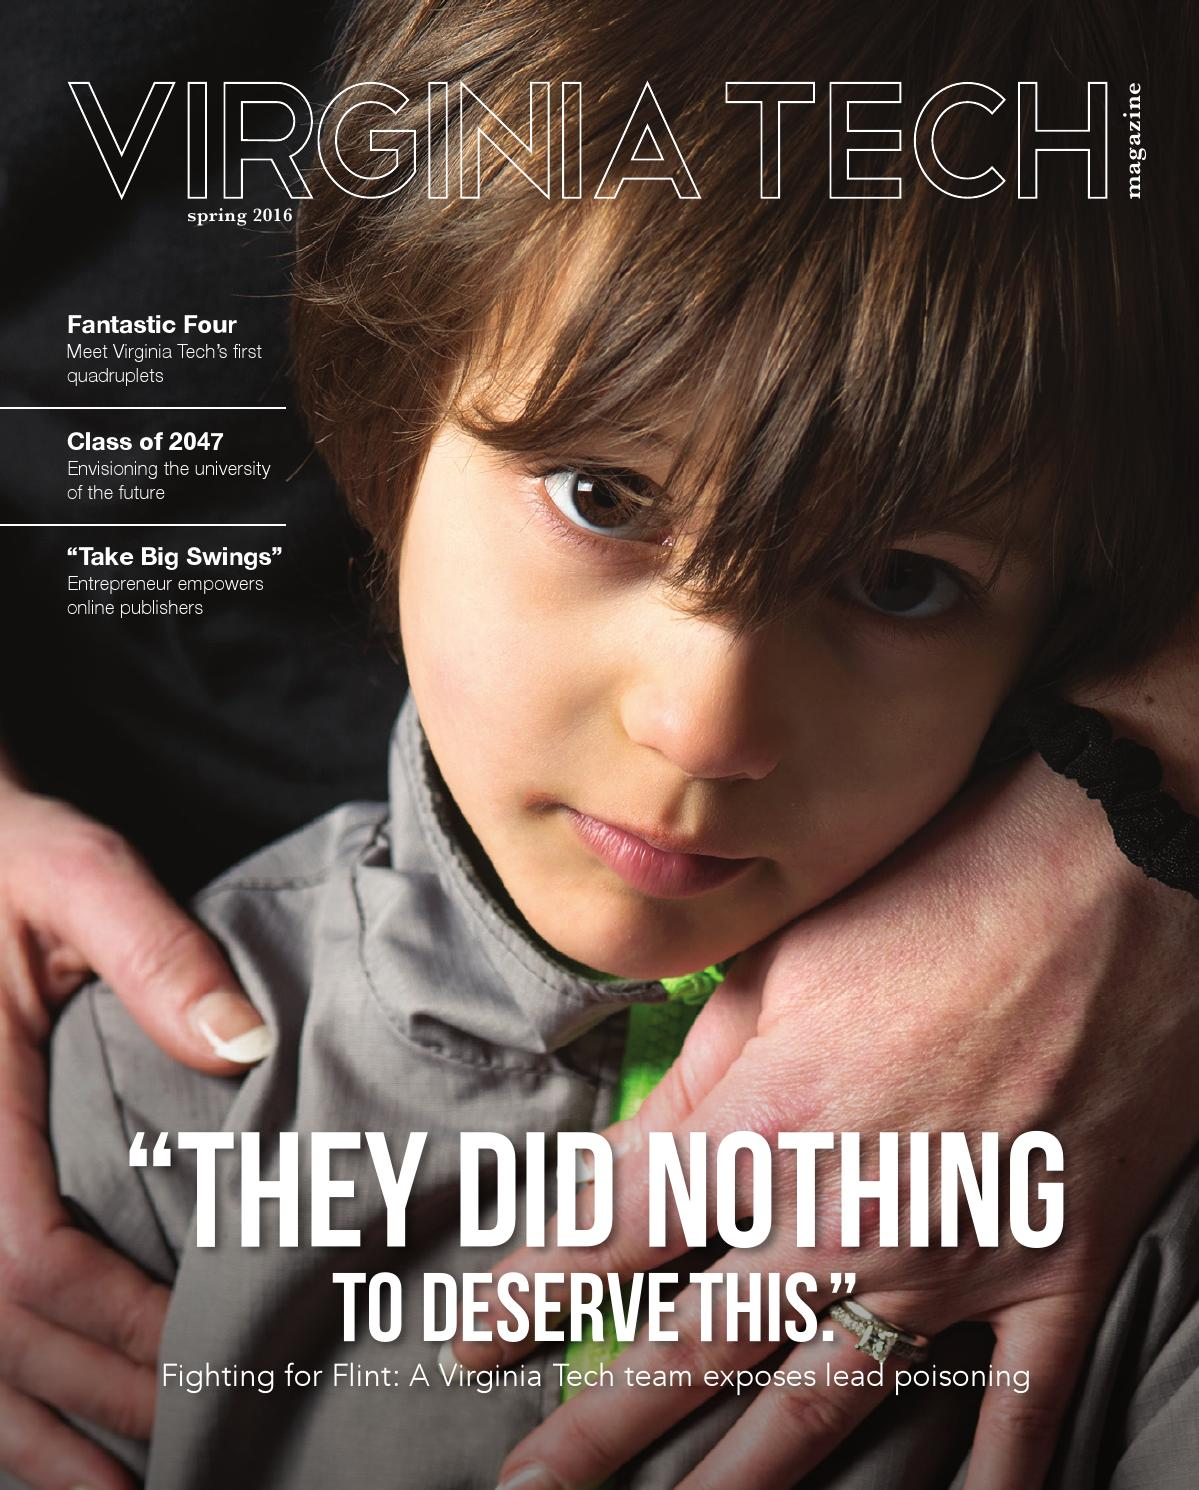 tech alumni magazine vol 91 no 4 2015 by tech virginia tech magazine spring 2016